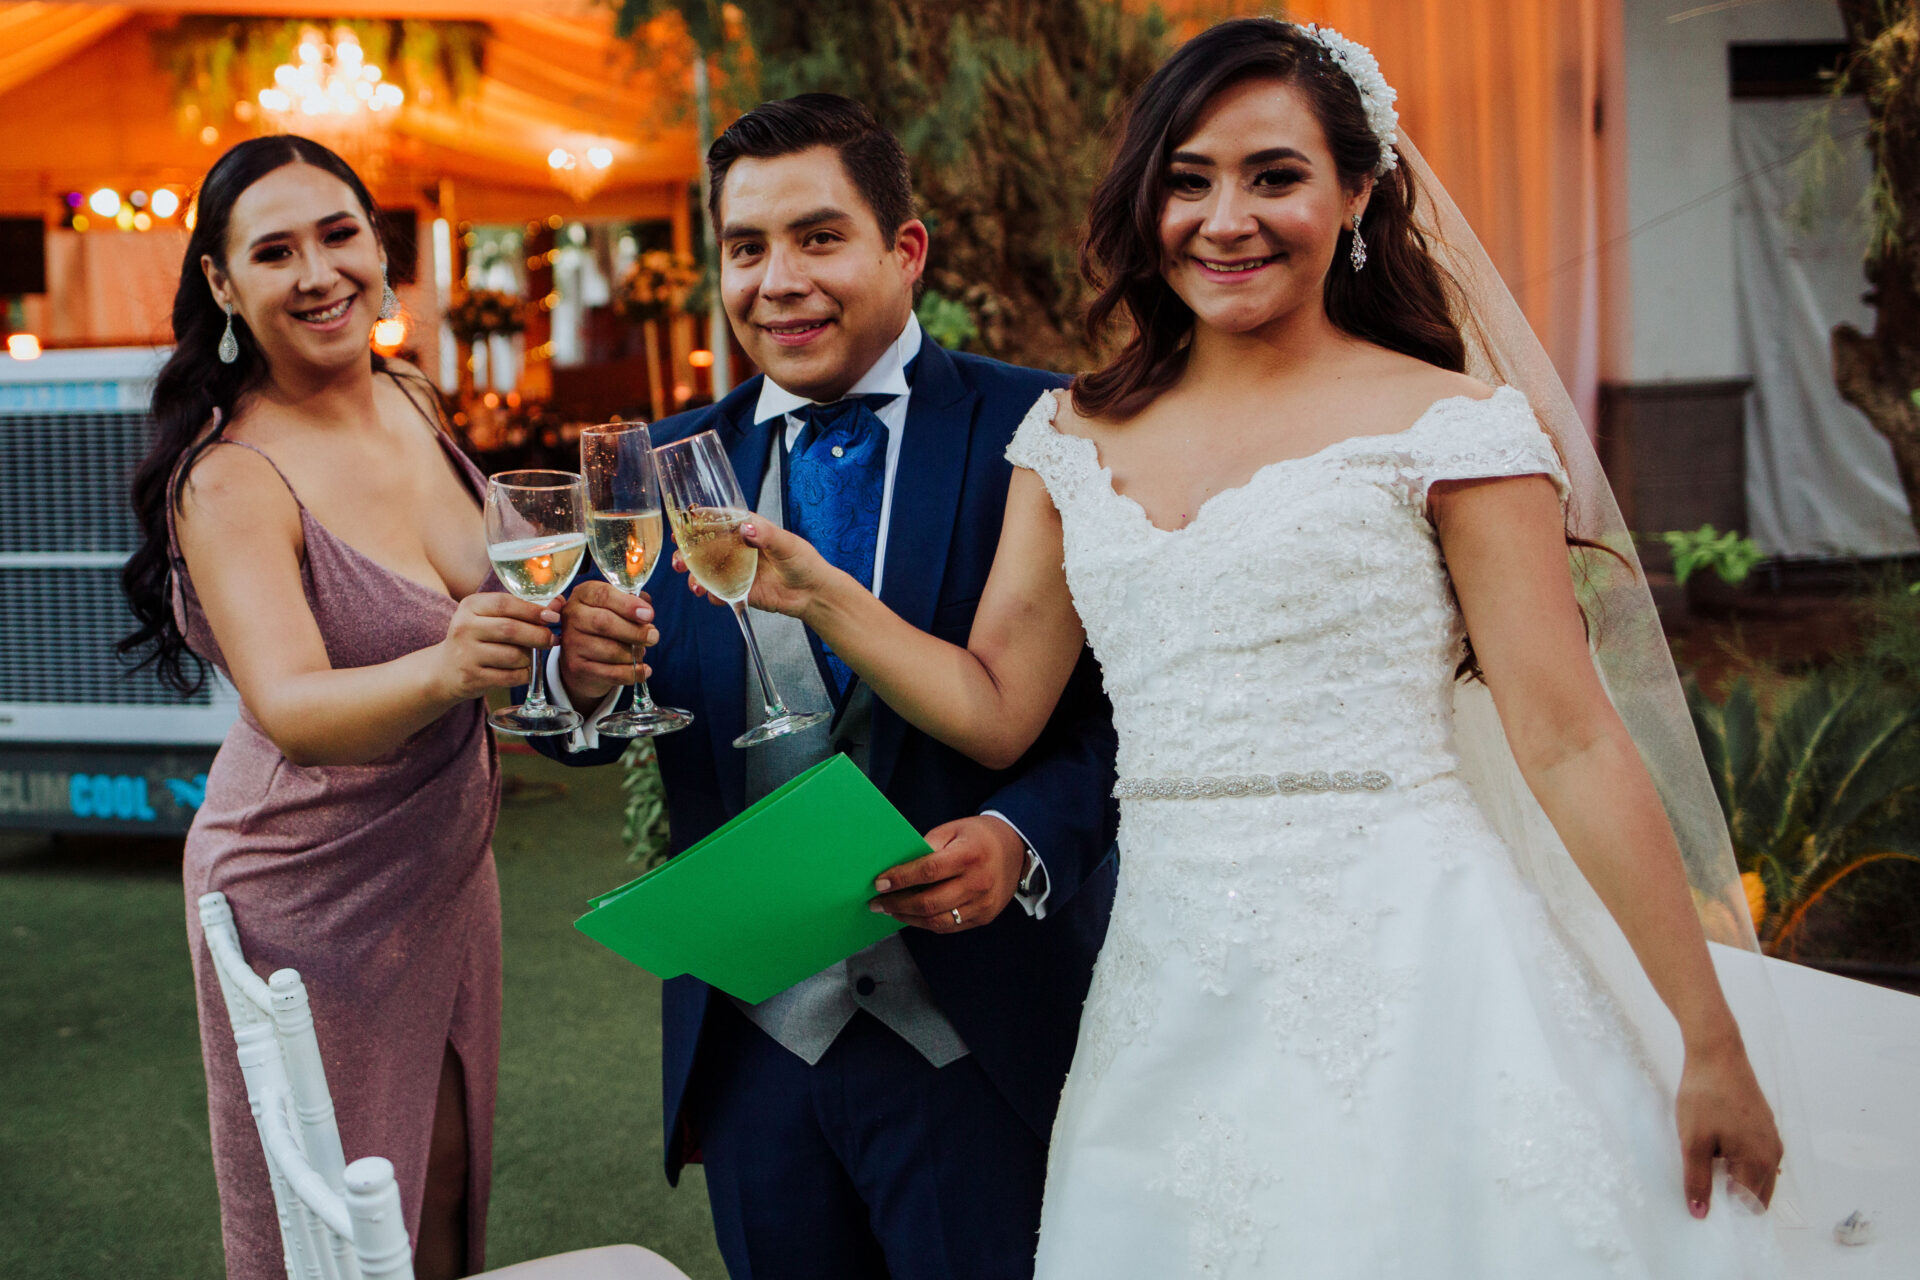 javier_noriega_fotografo_bodas_torreon_coahuila_zacatecas_wedding_photographer40a